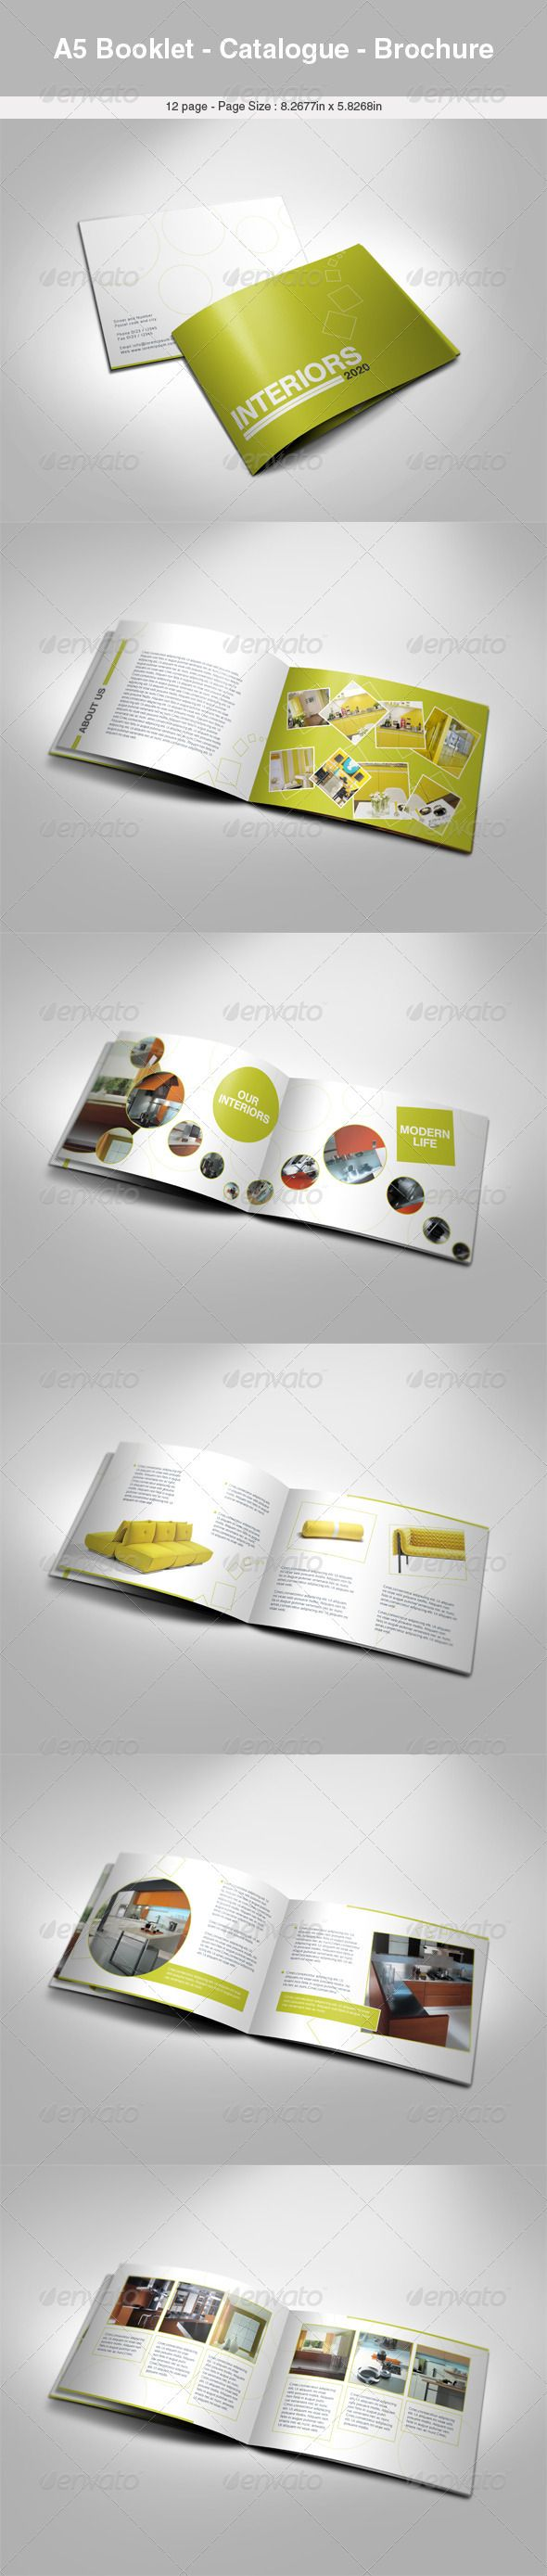 A5 Booklet - Catalogue - Brochure  - GraphicRiver Item for Sale favorite